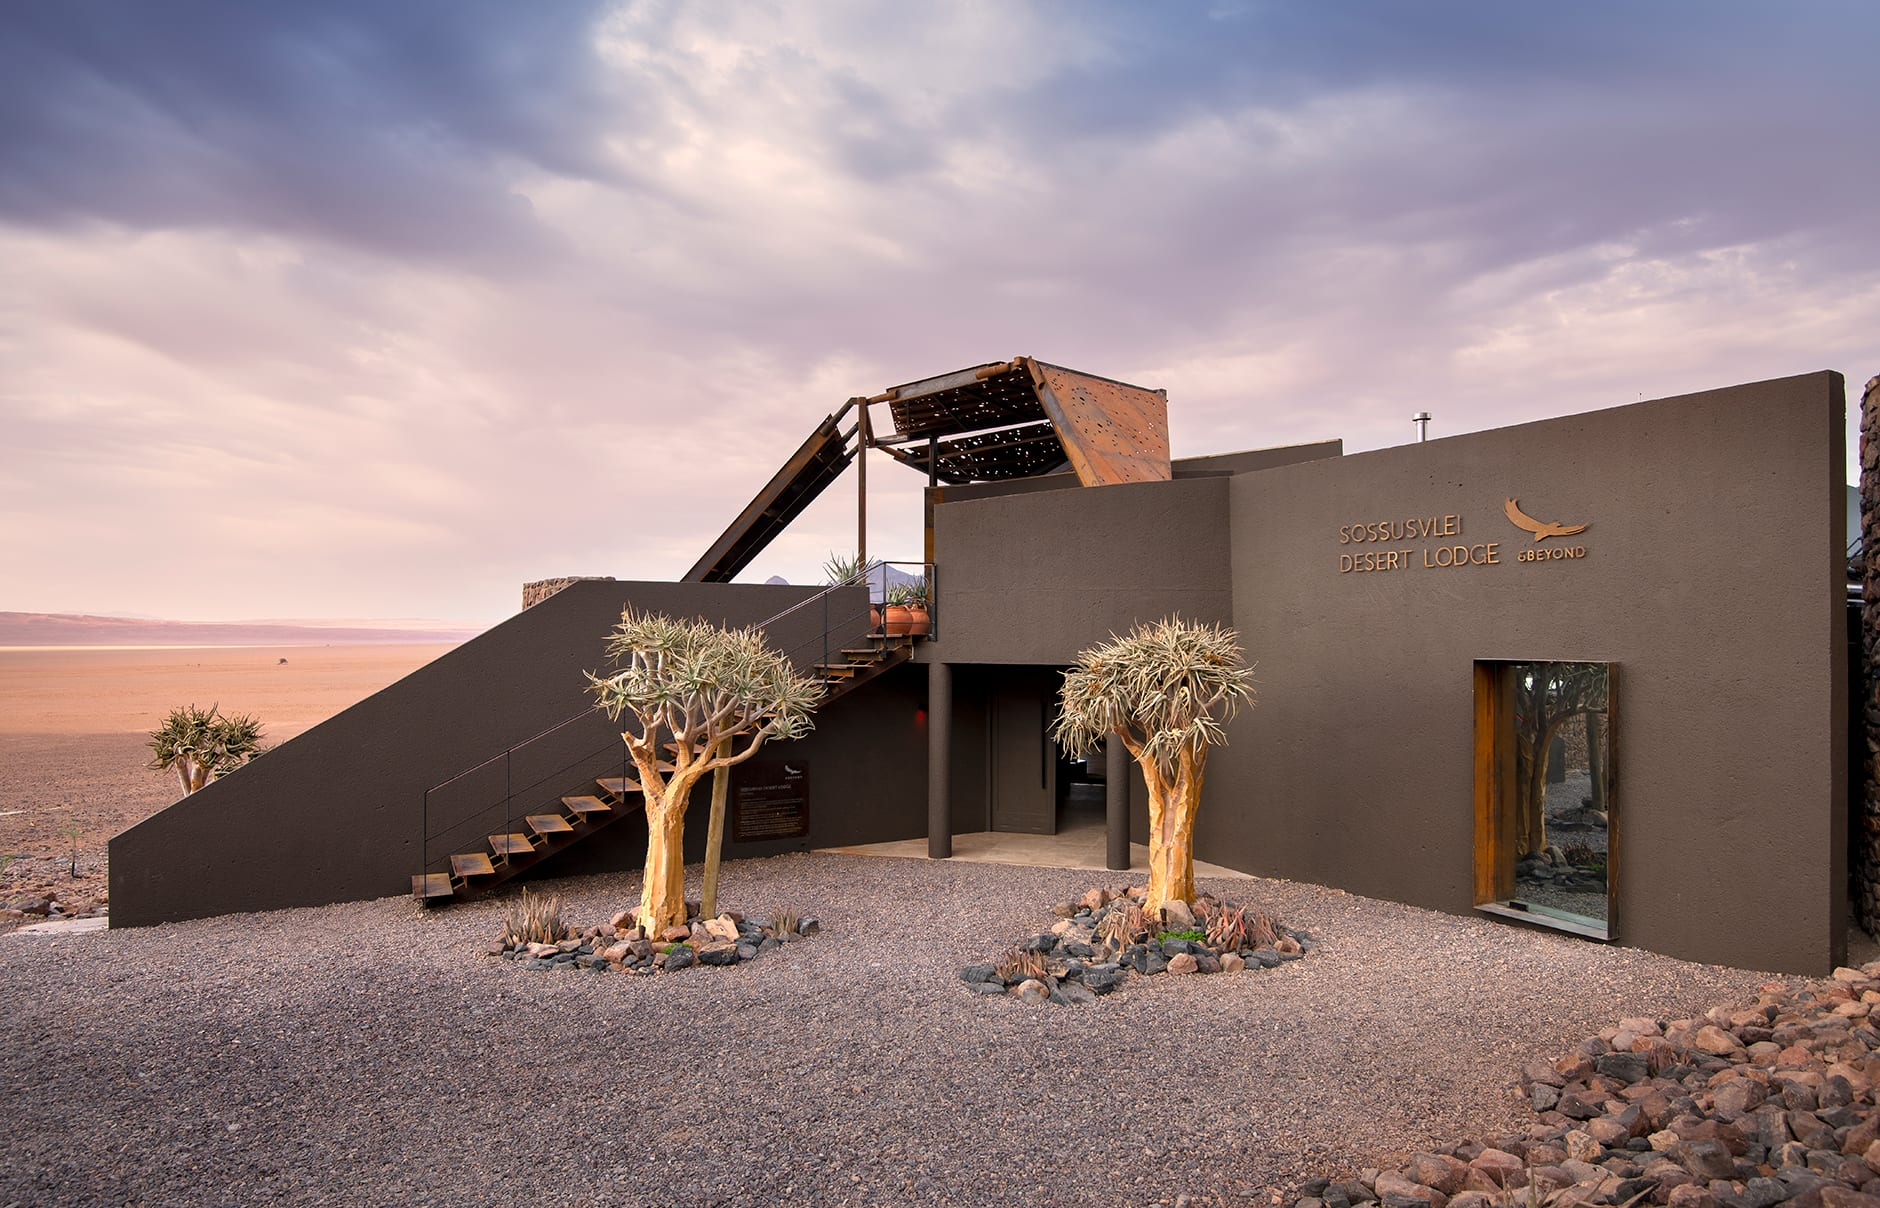 &Beyond-Sossusvlei Desert Lodge, Namibia. Review by TravelPlusStyle. Photo © &Beyond